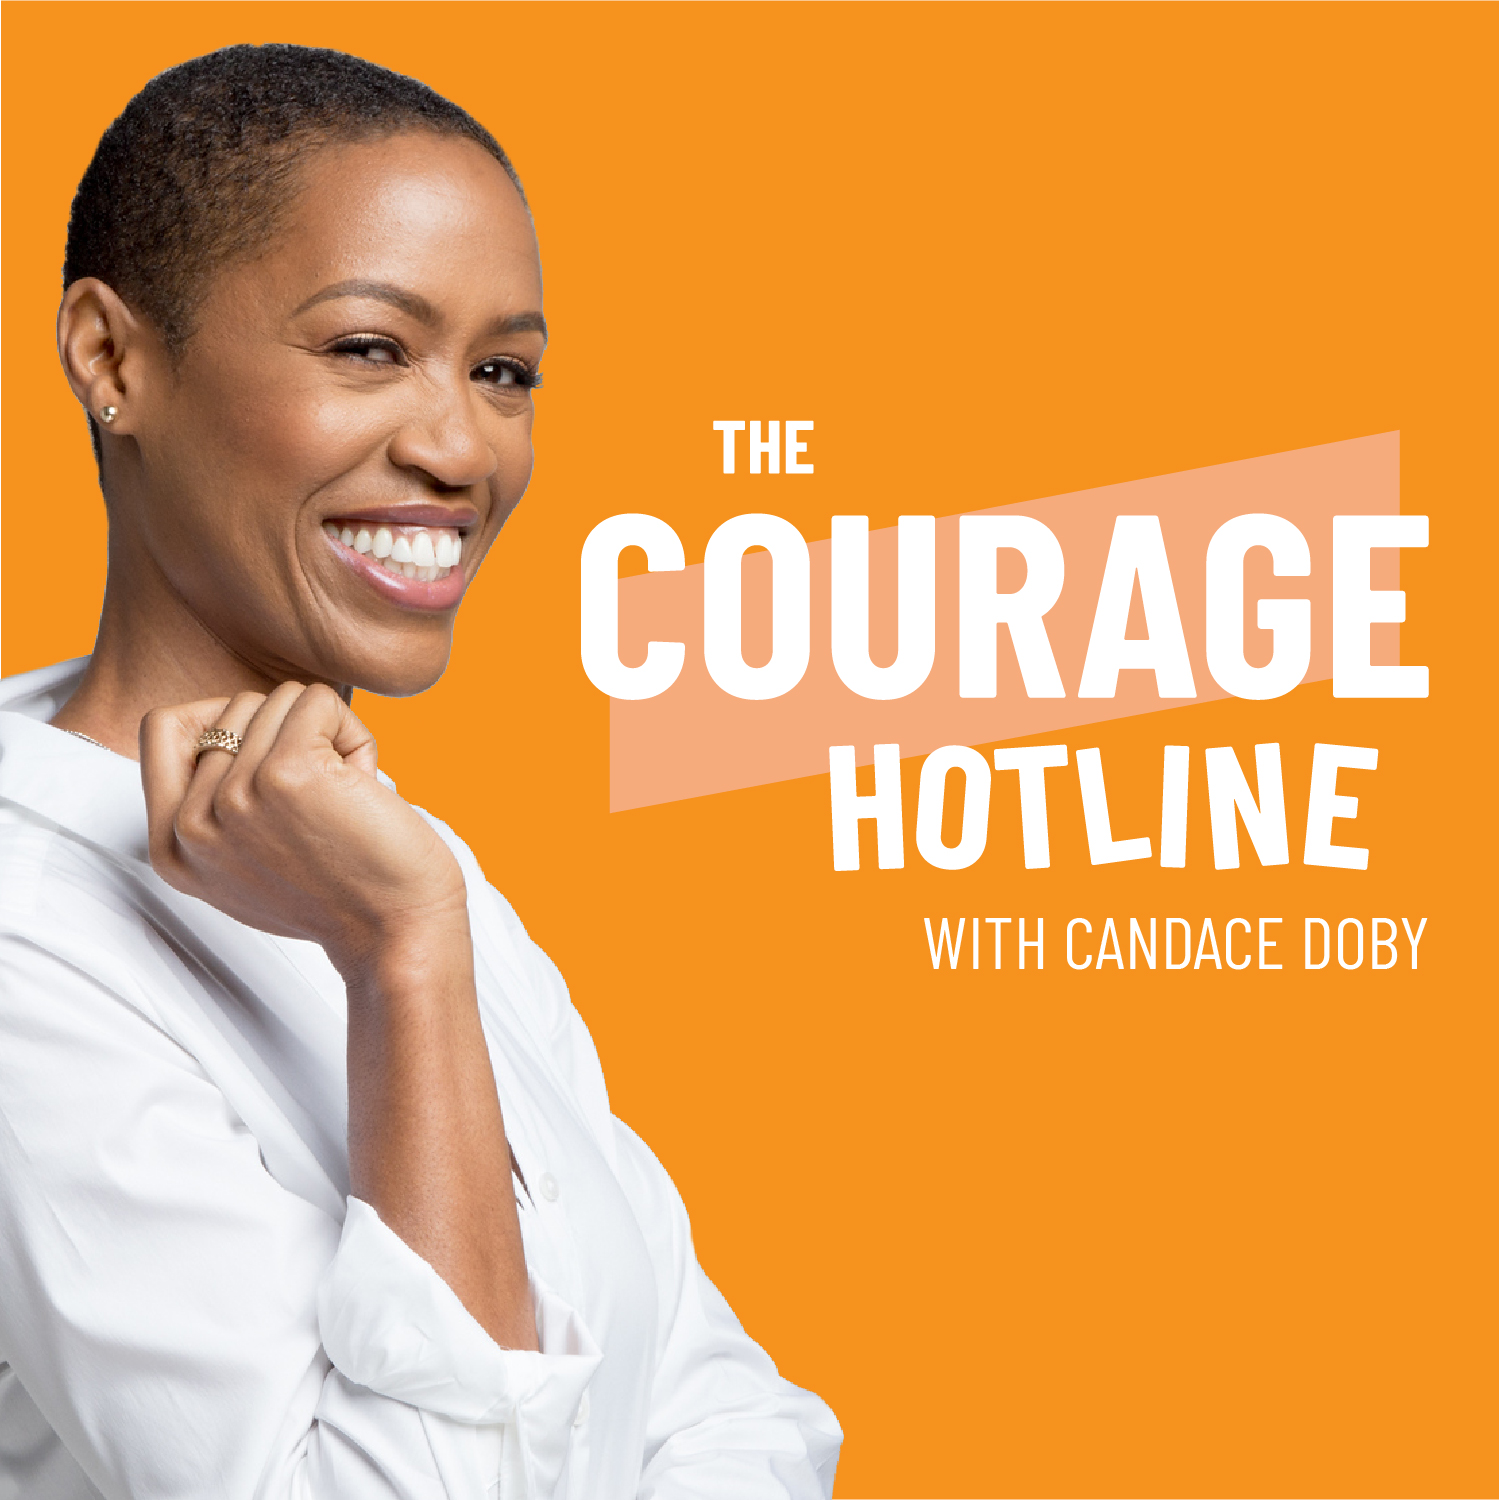 The Courage Hotline with Candace Doby